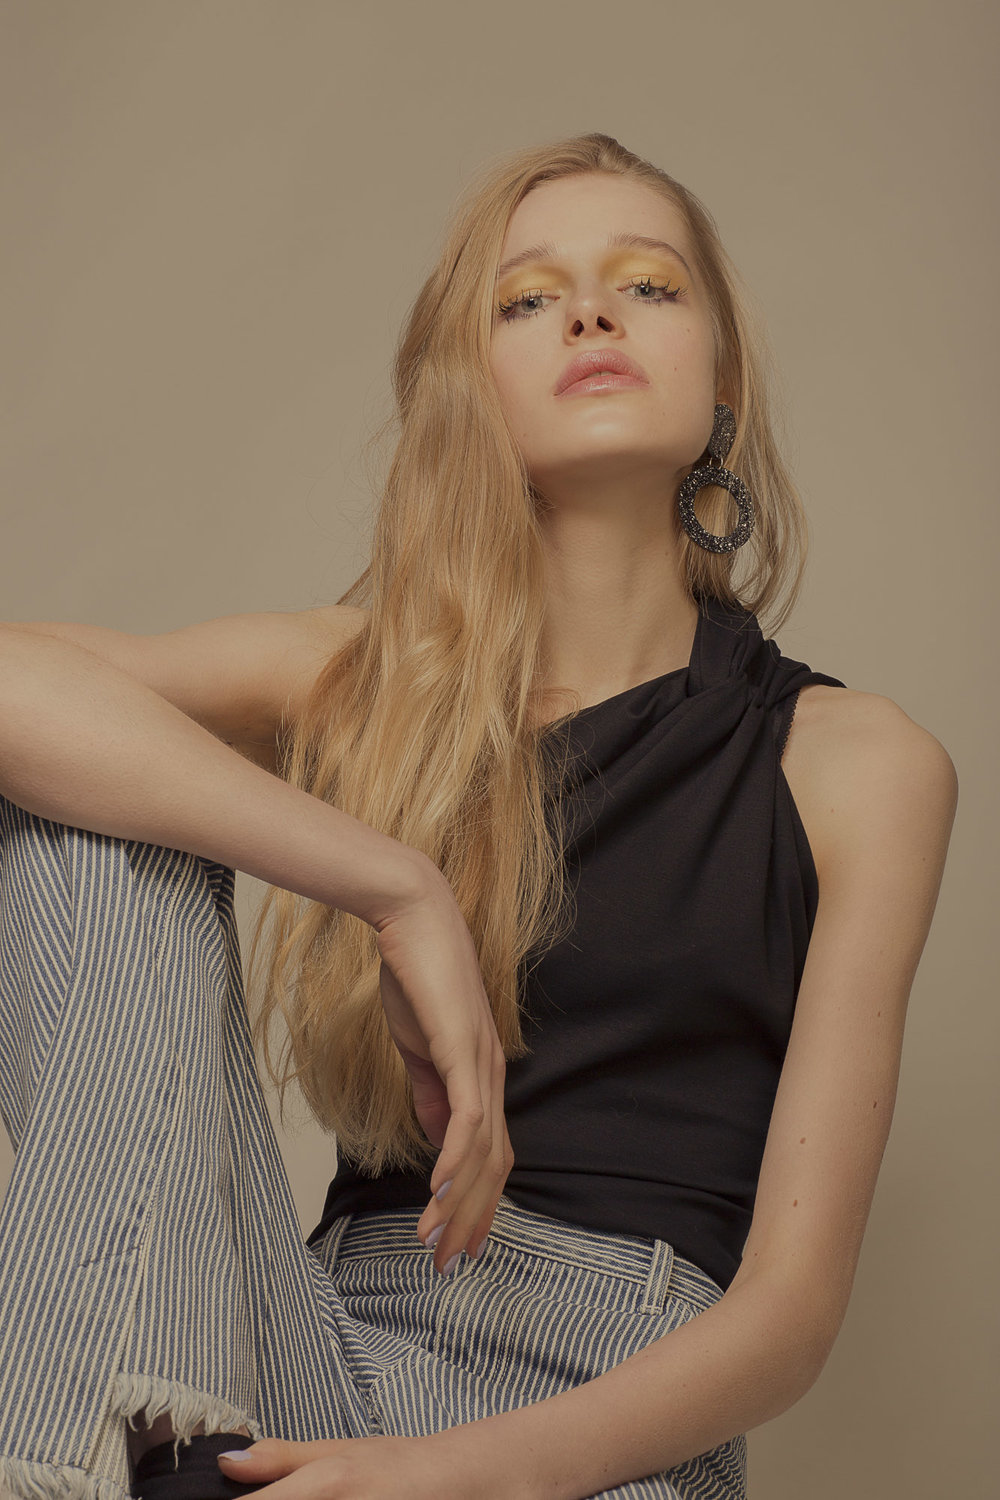 Top by Sid Neigum,Jeans Toga Pulla, Earrings Sophie Cull-Candy